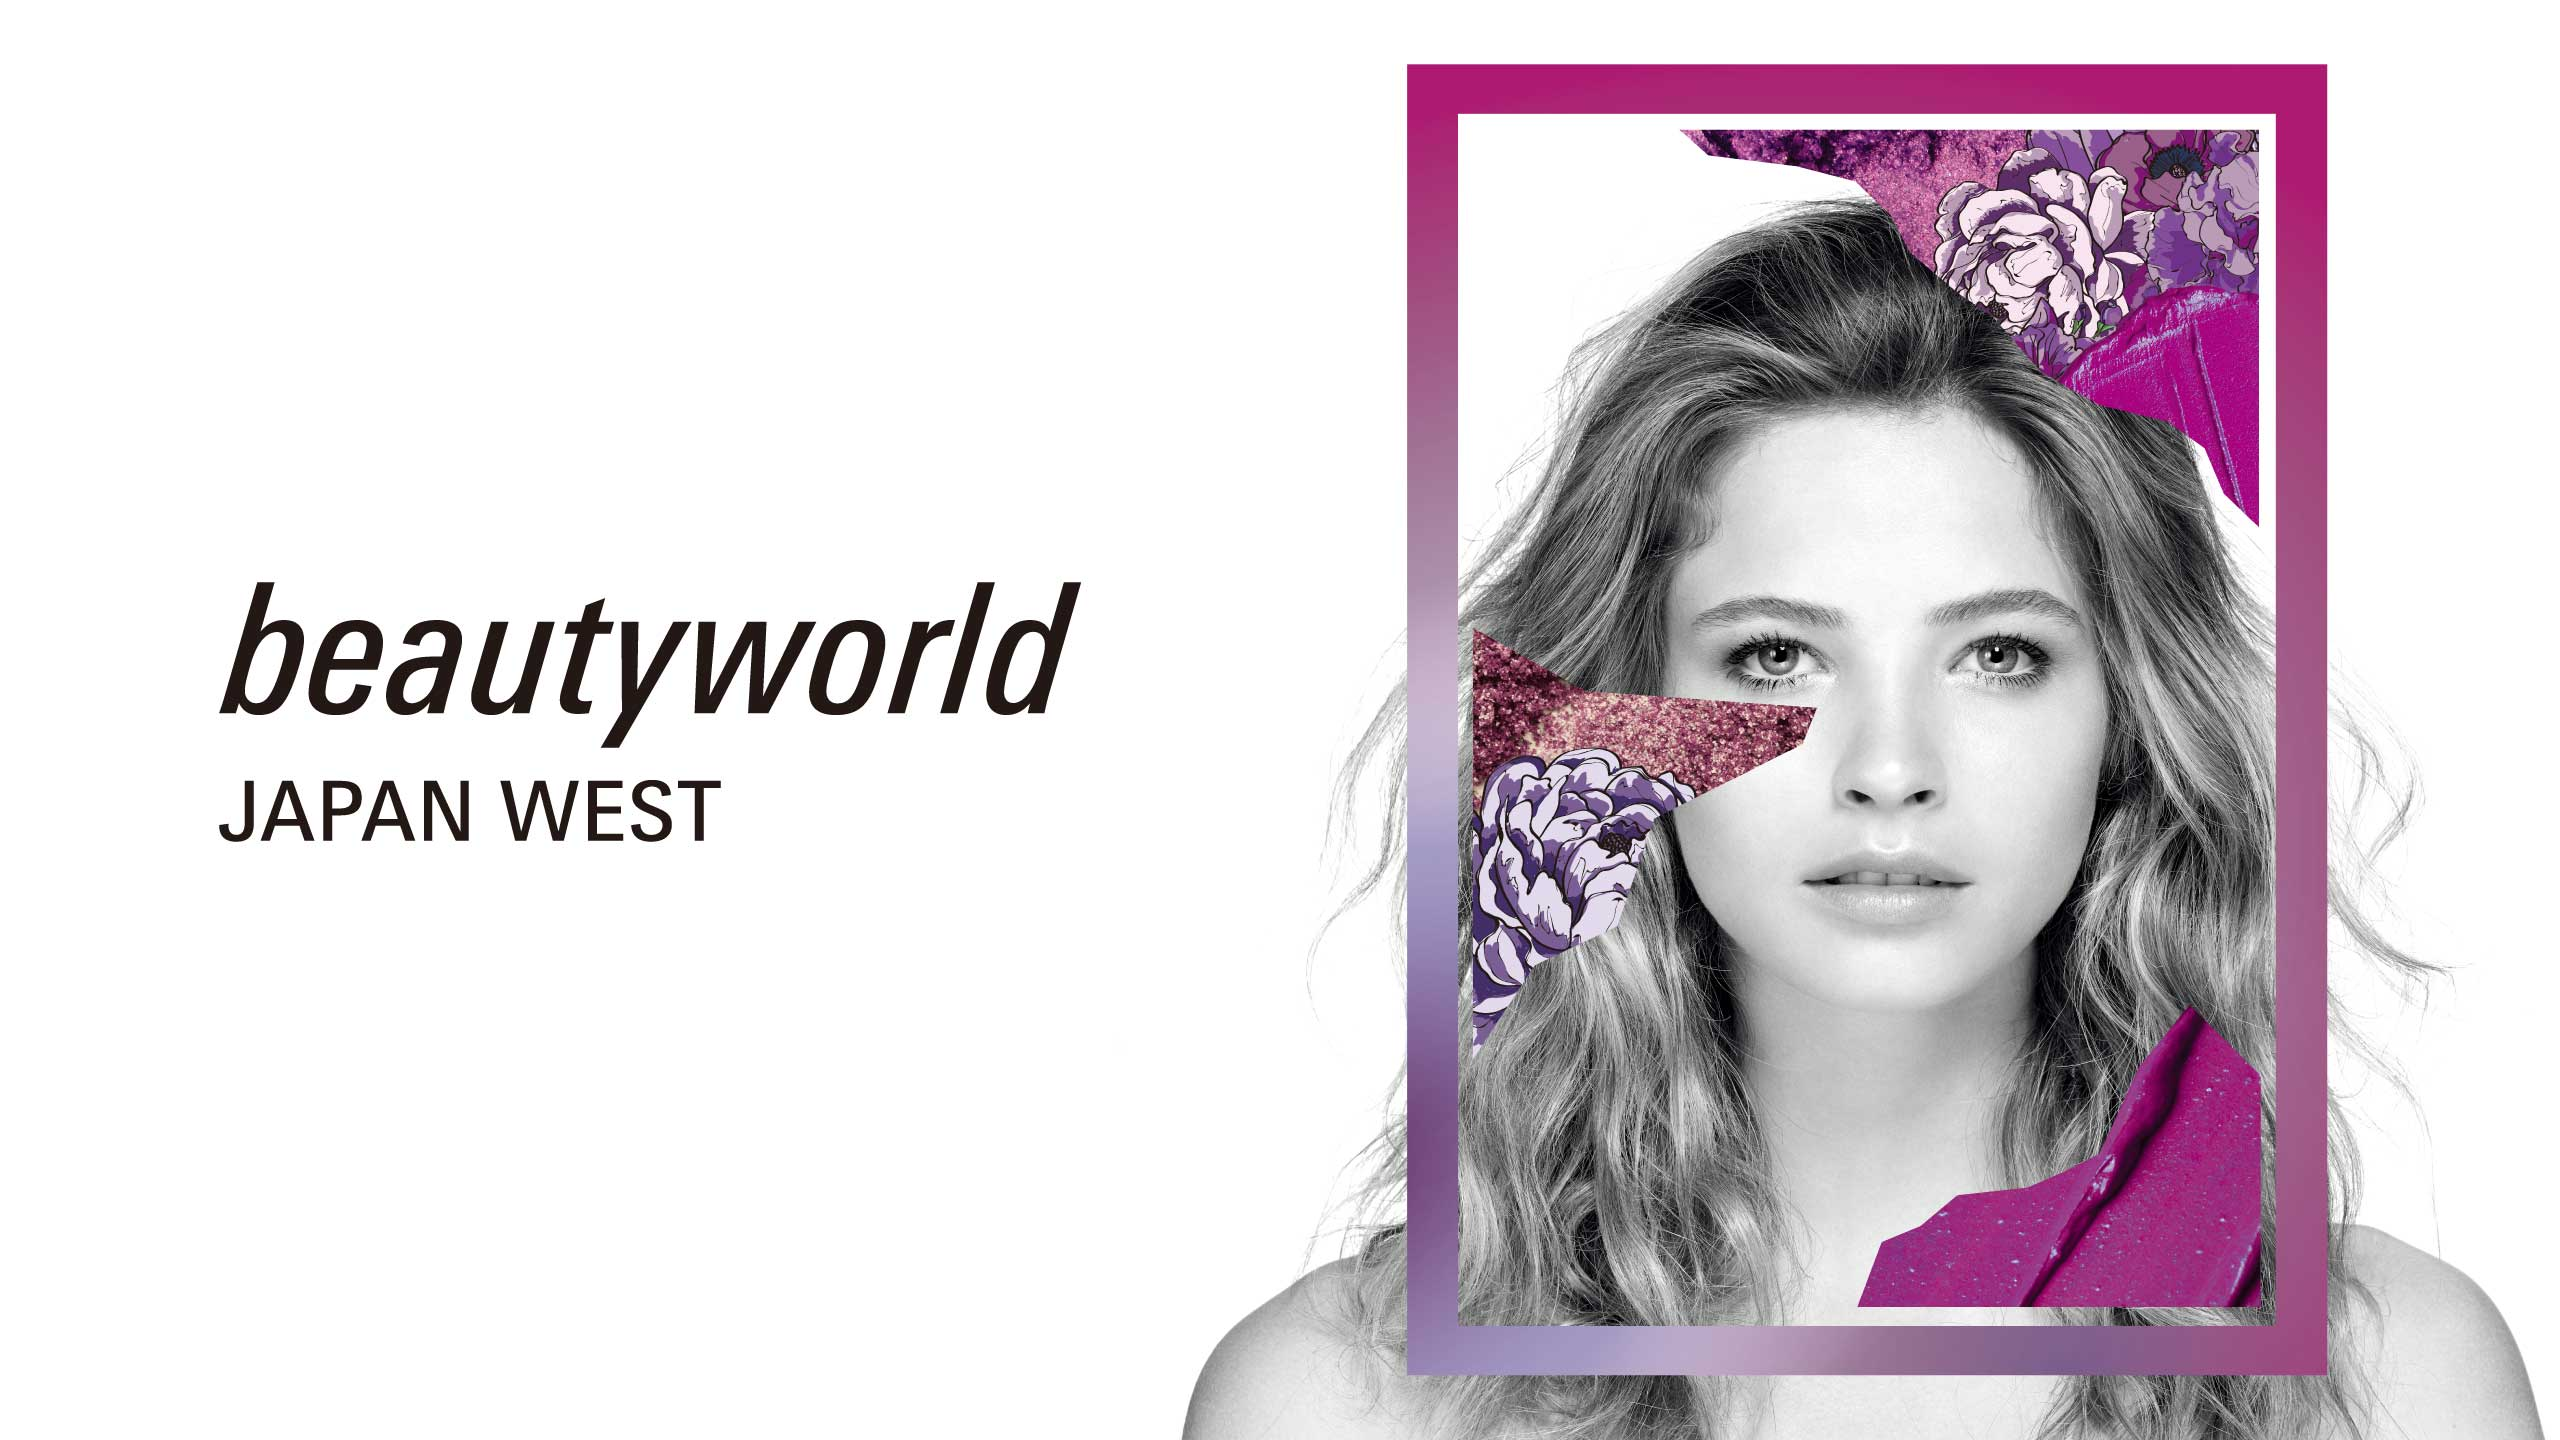 Beautyworld Japan West Keyvisual 2020